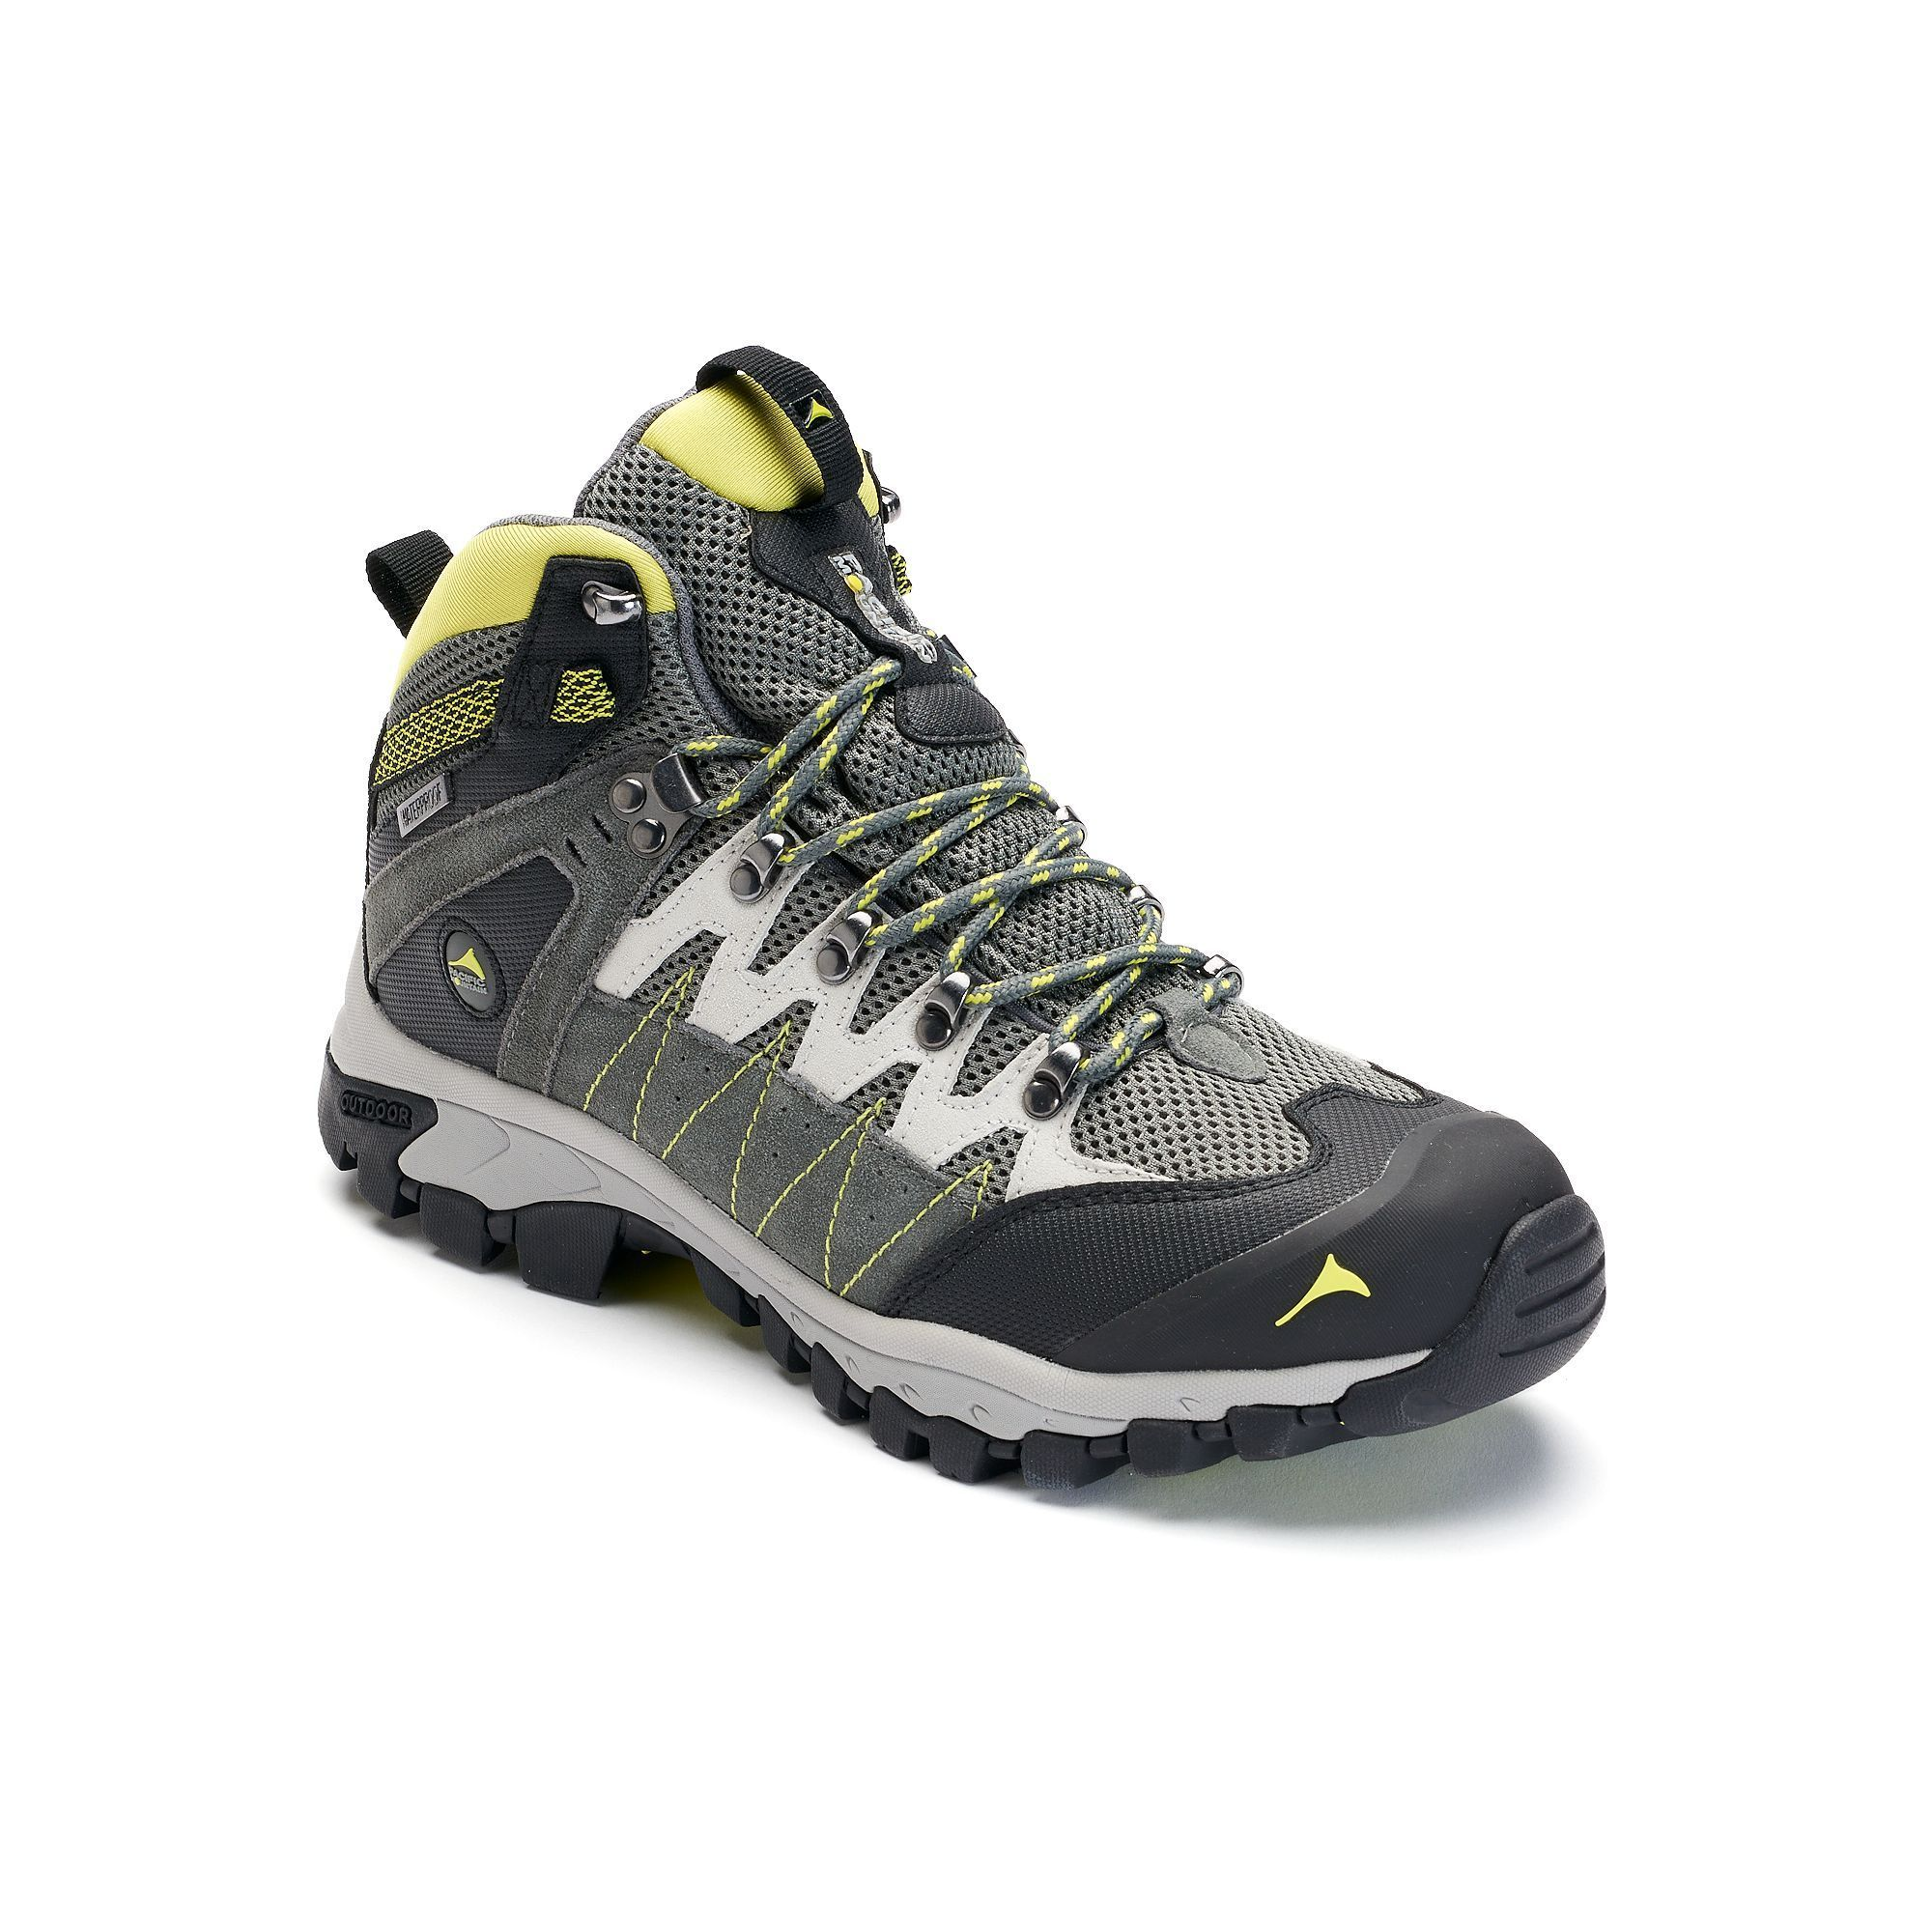 2e728138054 Pacific Mountain Descend Men's Waterproof Hiking Boots | Products ...